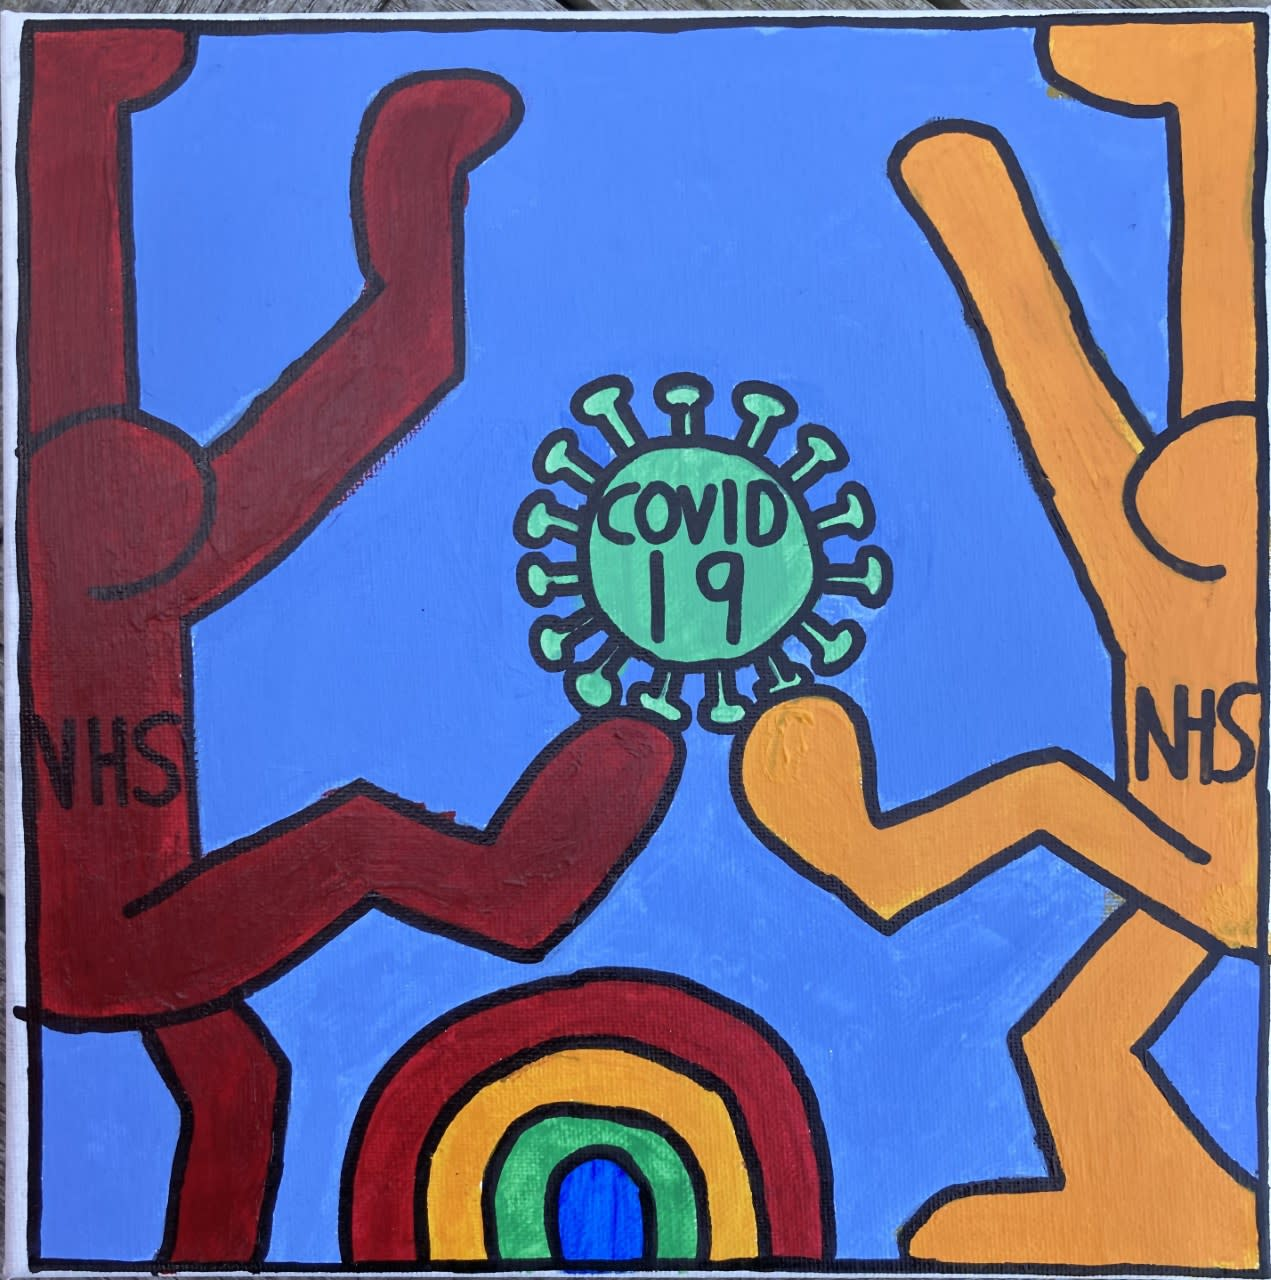 Luke Bailey, age 12 NHS Key Workers fighting the Covid together Inspired by Keith Haring